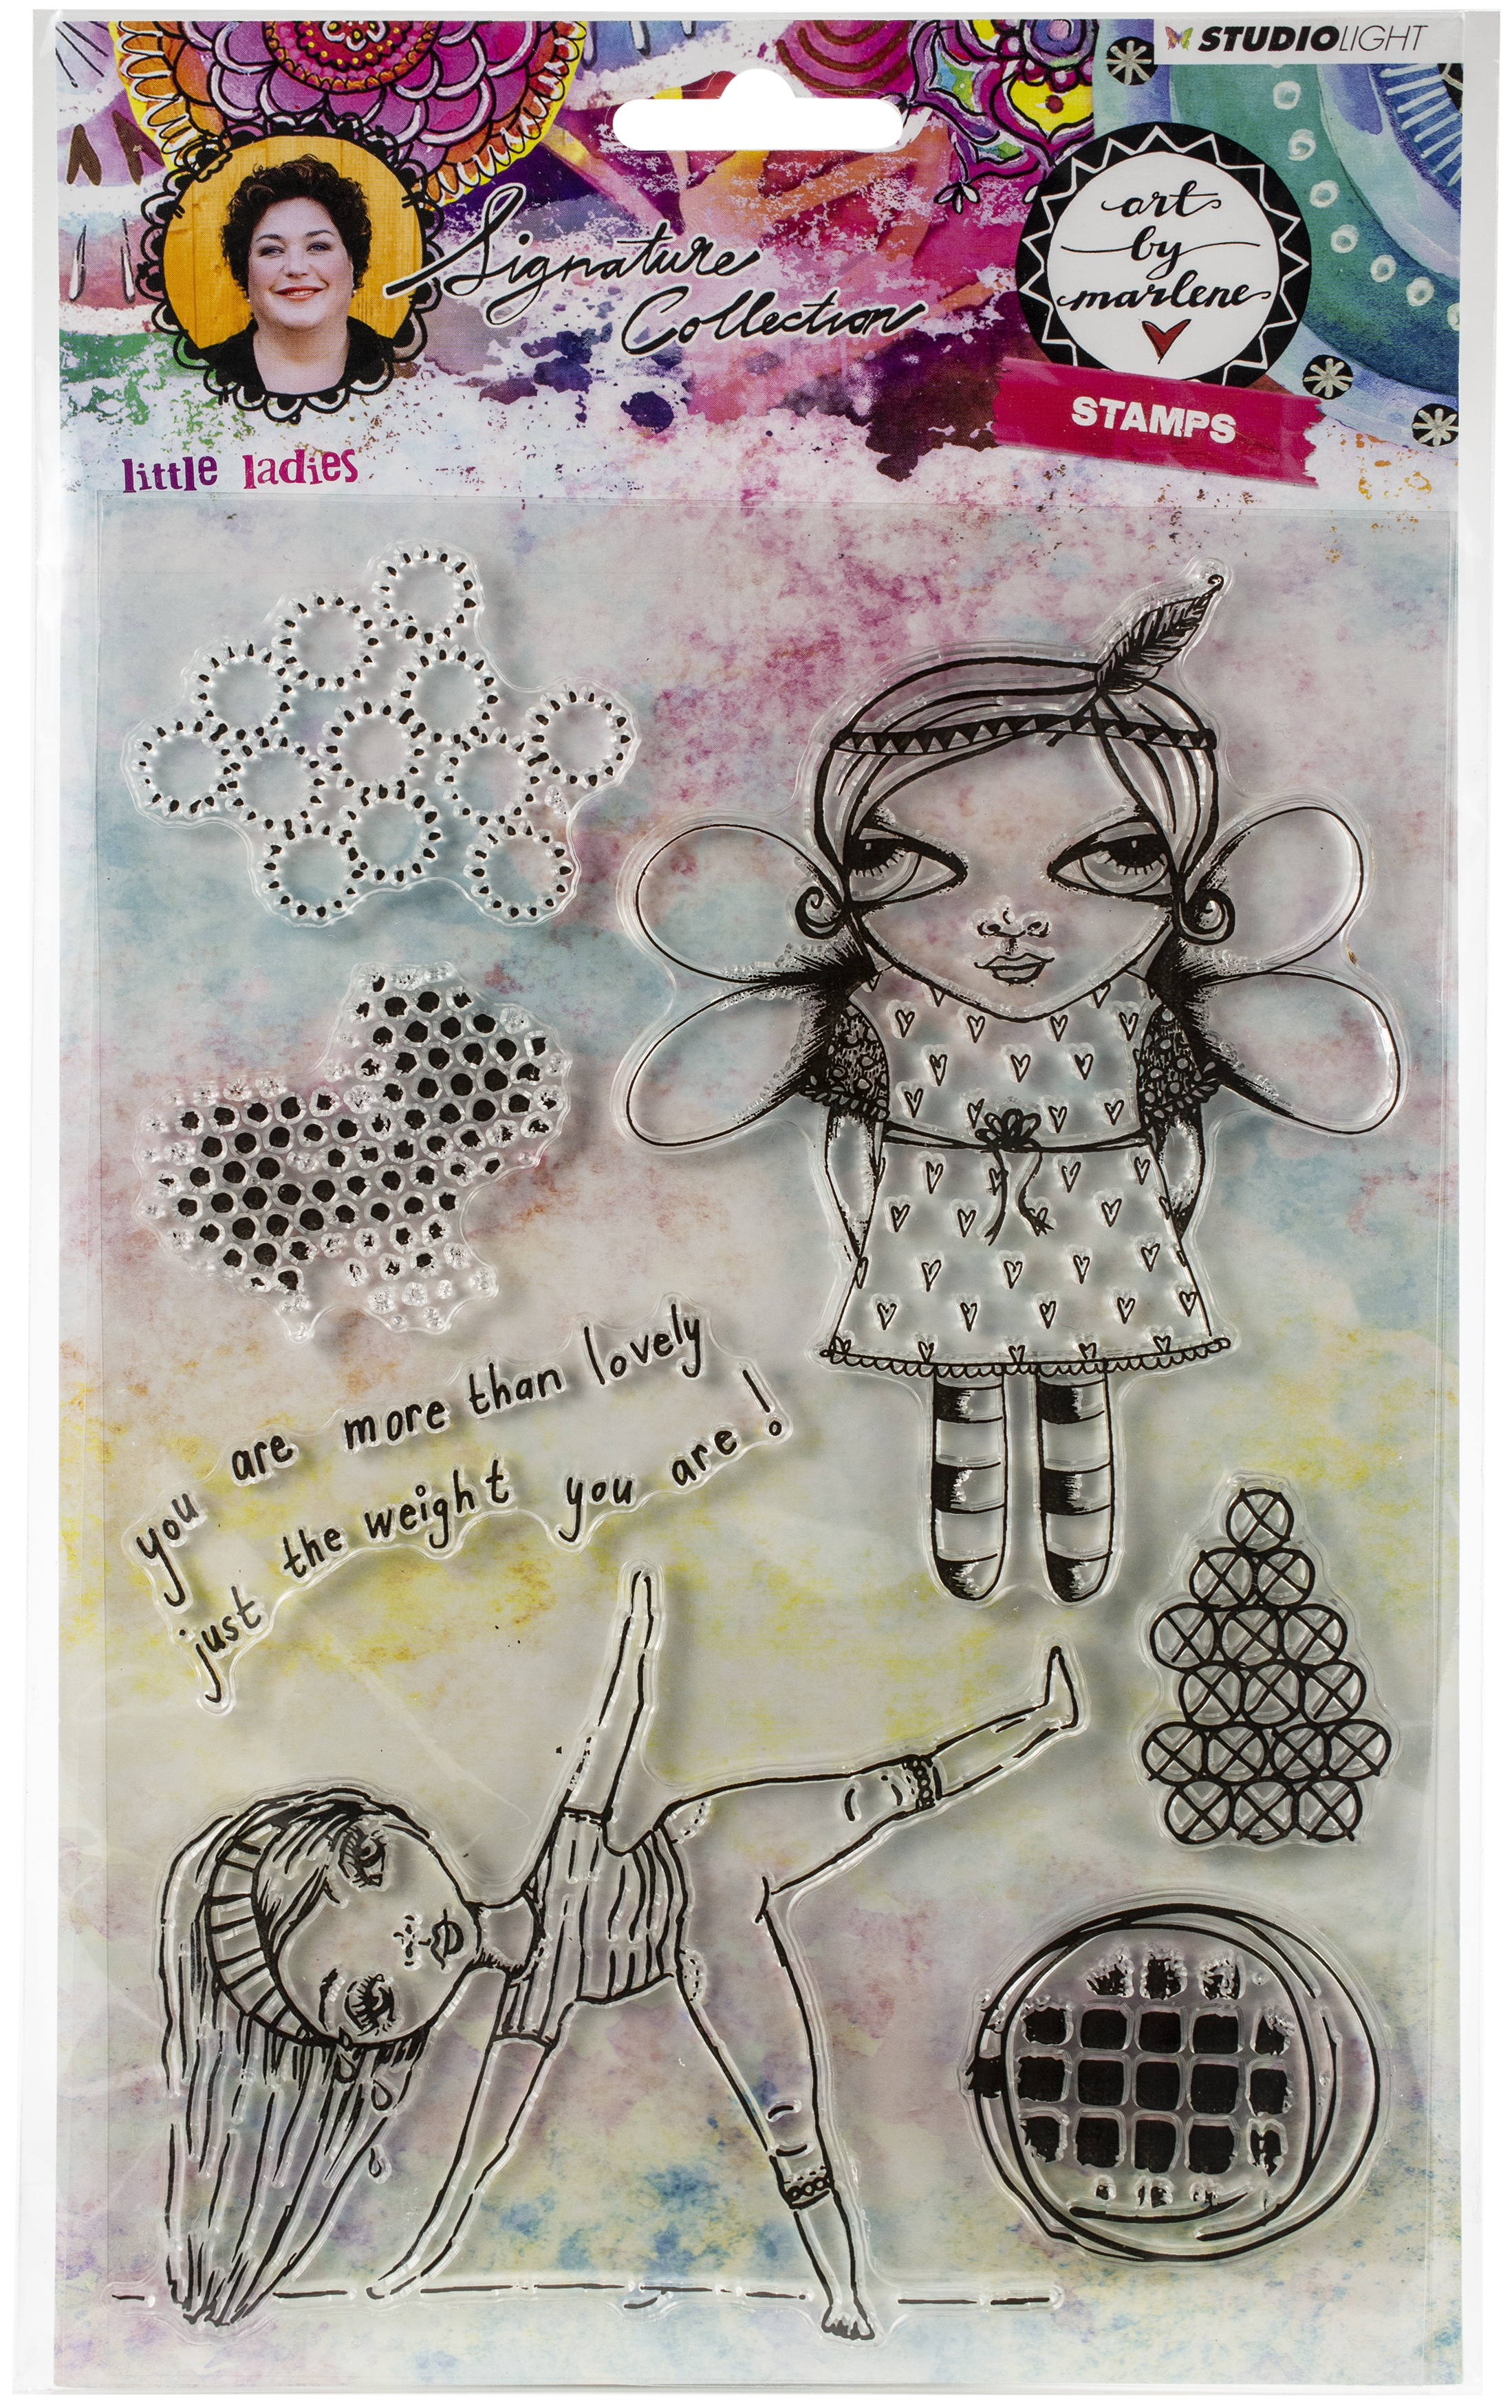 Studio Light Art By Marlene 3.0 Stamps-NR. 38, Little Ladies